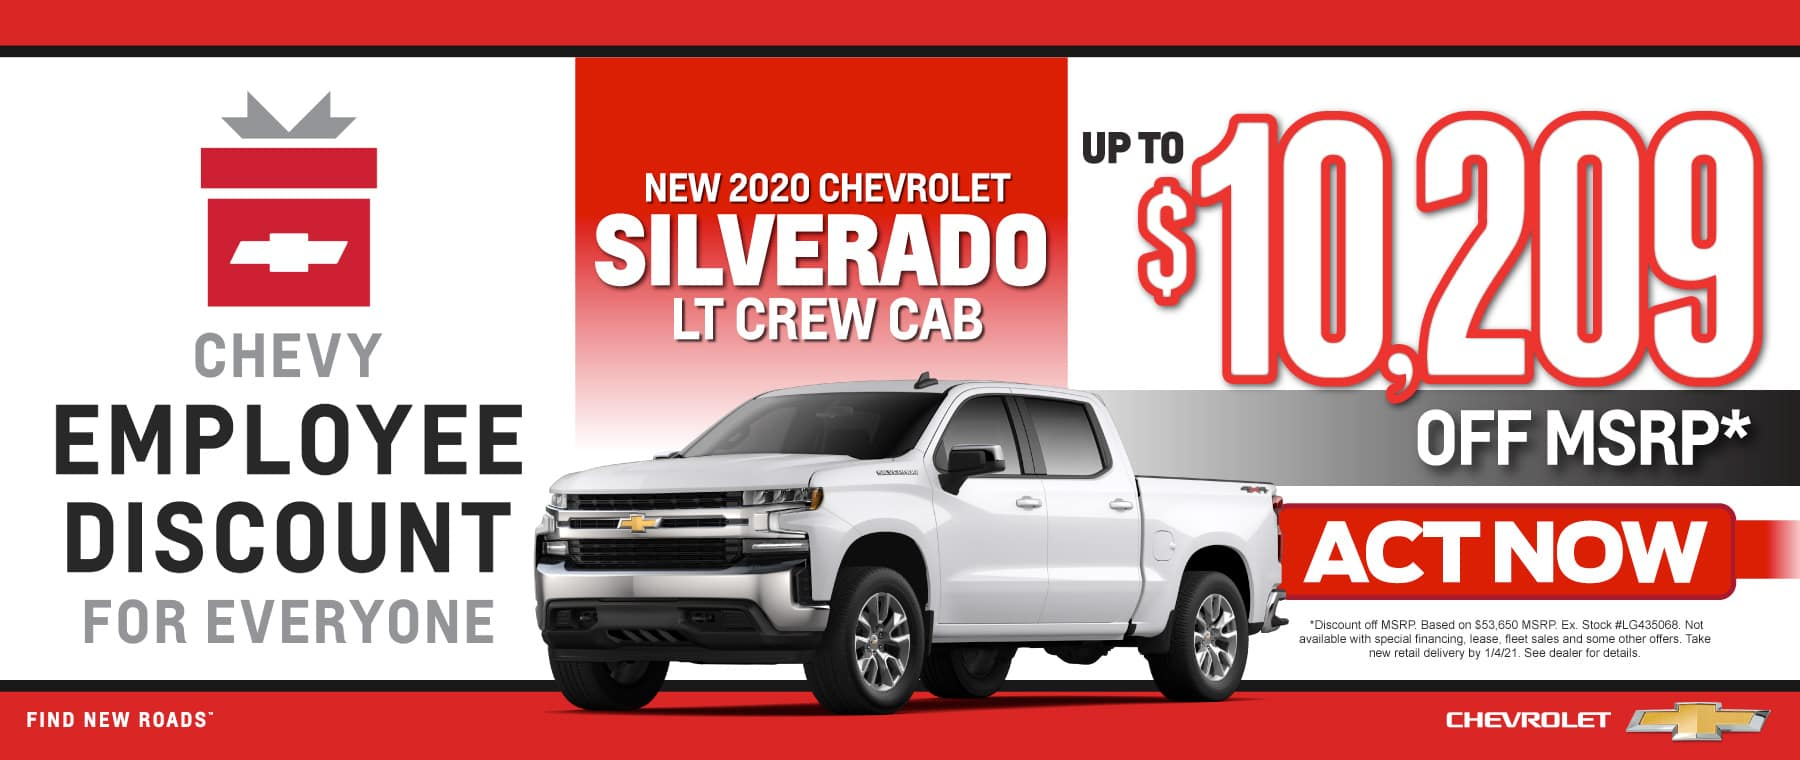 New 2020 Chevy Silverado - Up to $10,209 off msrp - Act Now